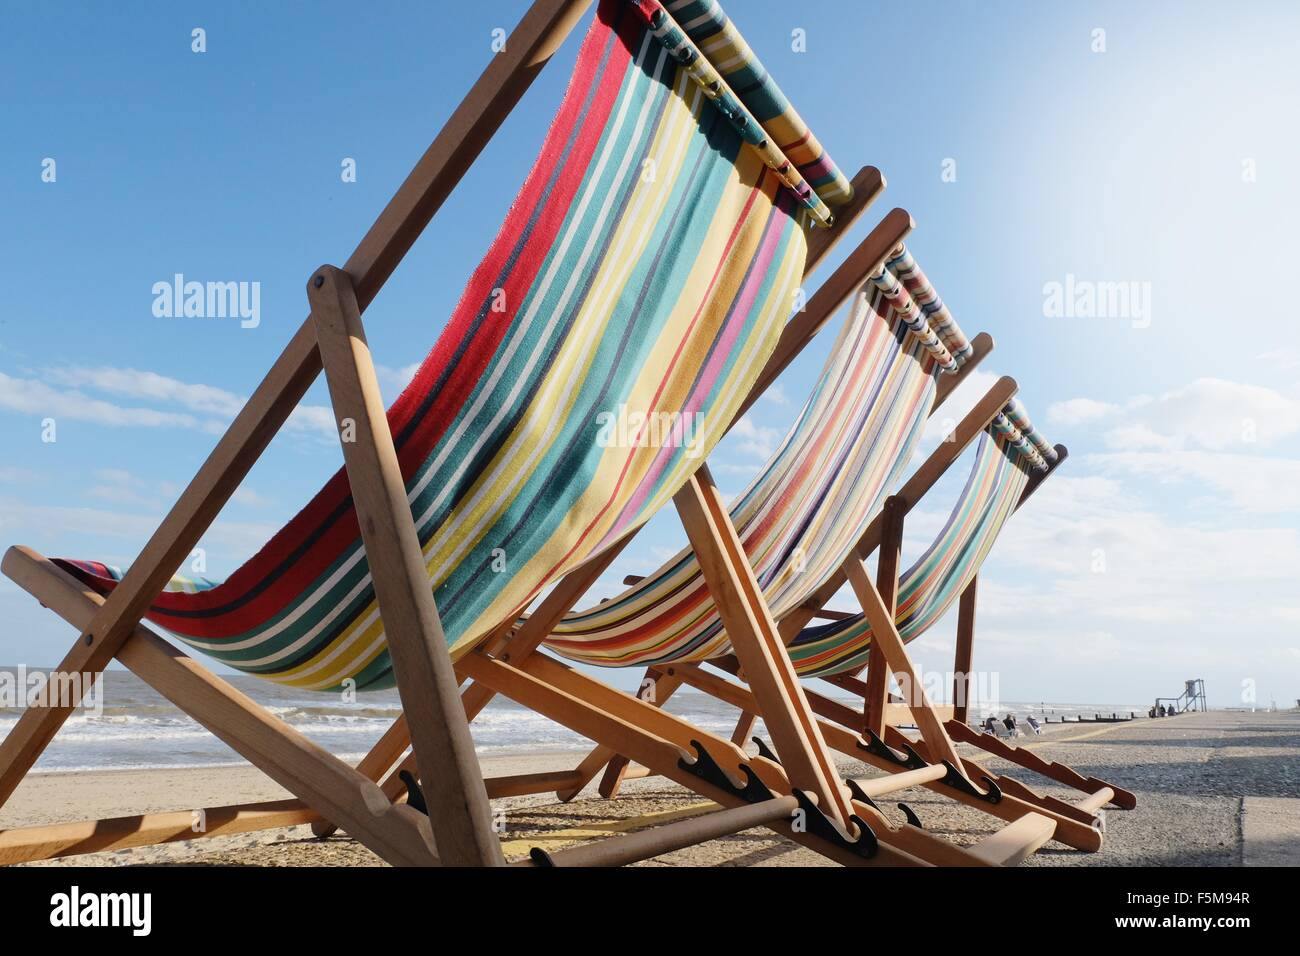 Three empty deckchairs, rear view, low angle view - Stock Image